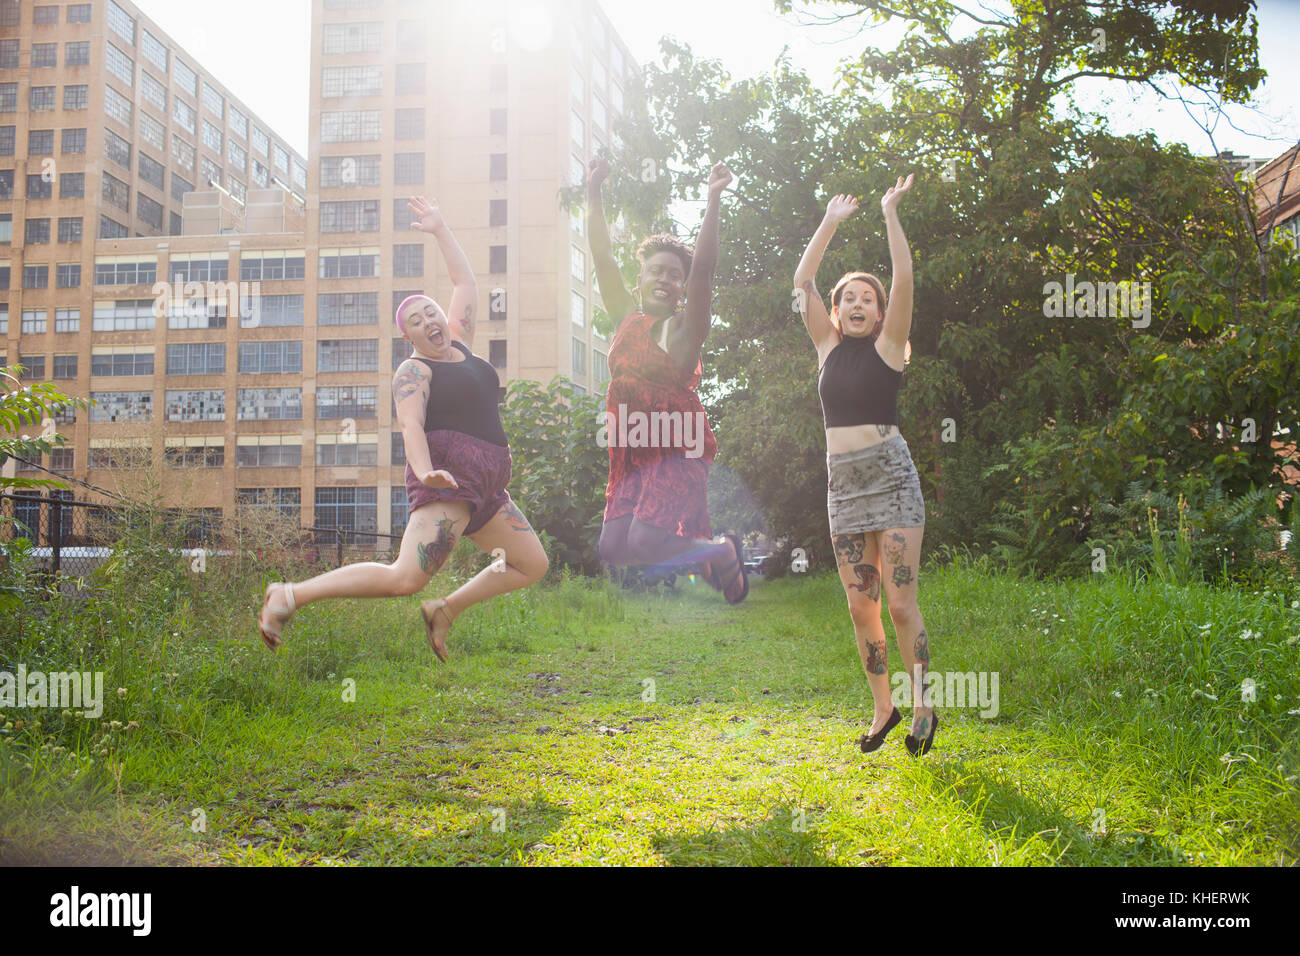 Three young women jumping - Stock Image